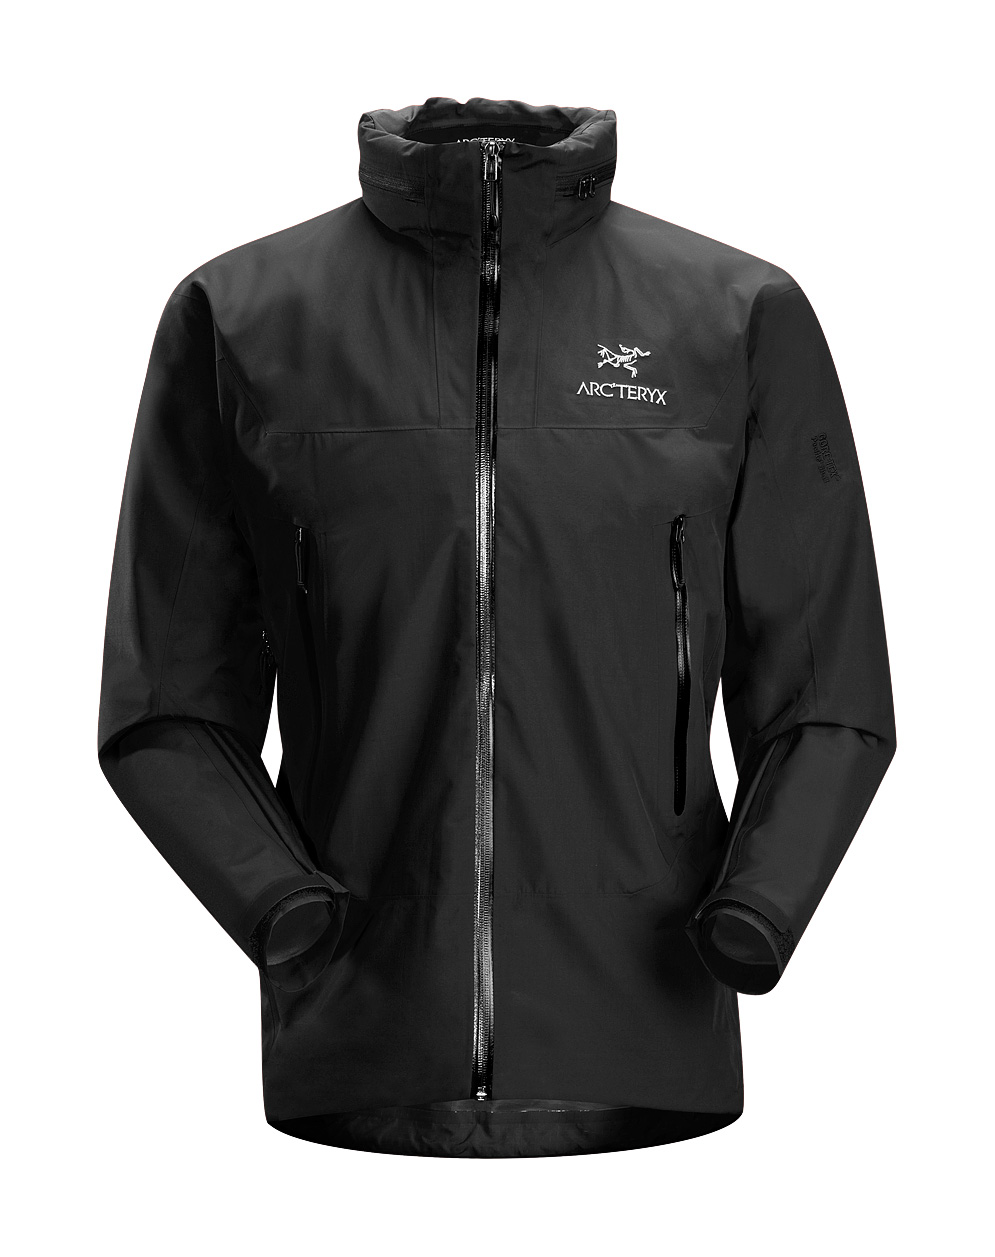 Arcteryx Jackets Men Black Theta SL Hybrid Jacket - New